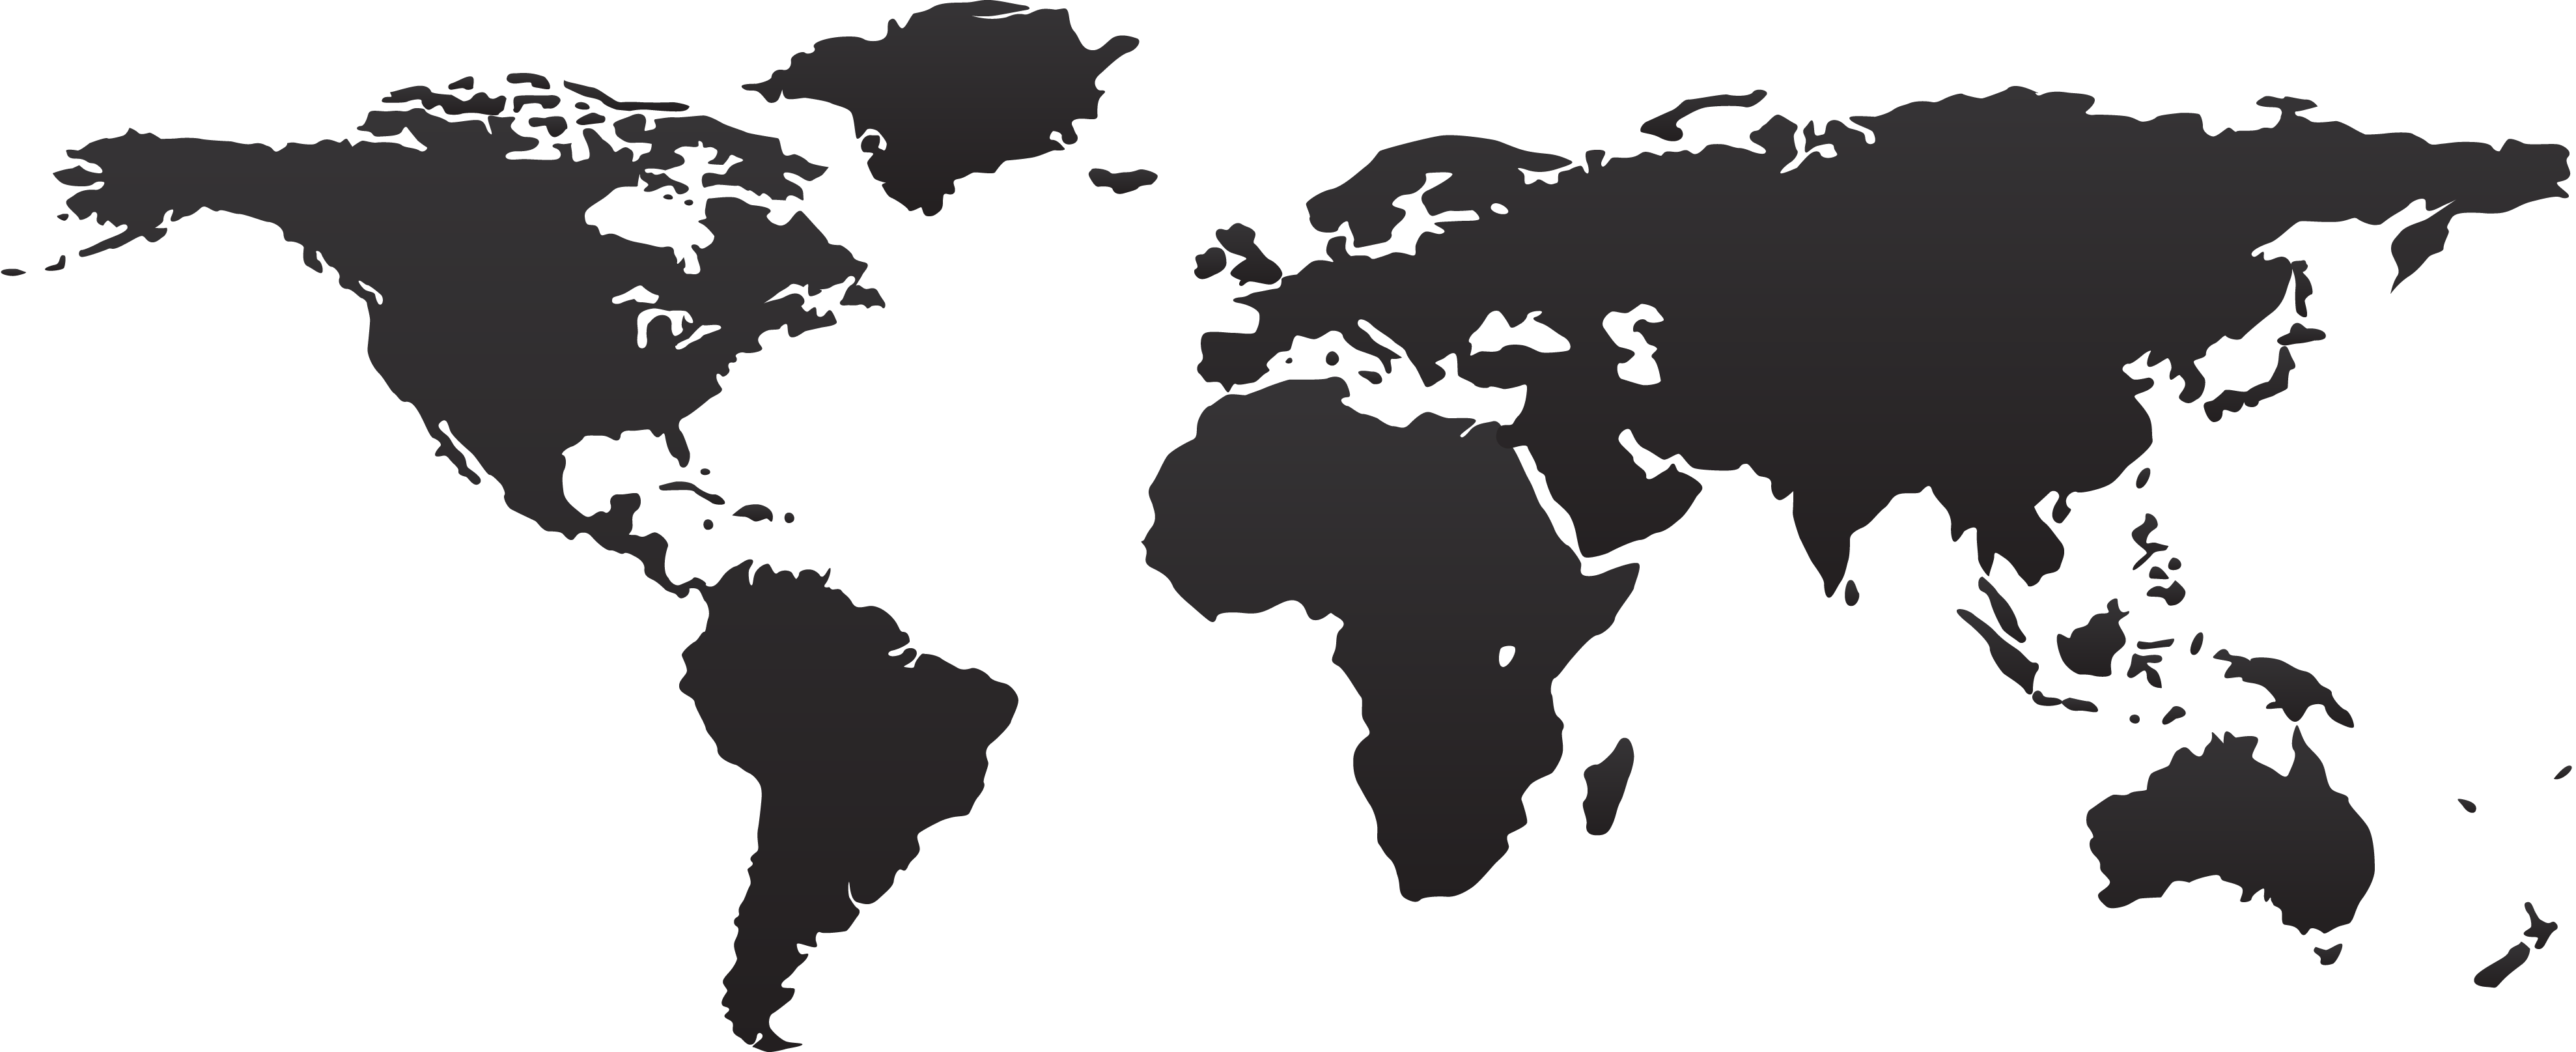 World map black and white hd wallpapers download free world map world map black and white hd wallpapers download free world map black and white tumblr gumiabroncs Choice Image